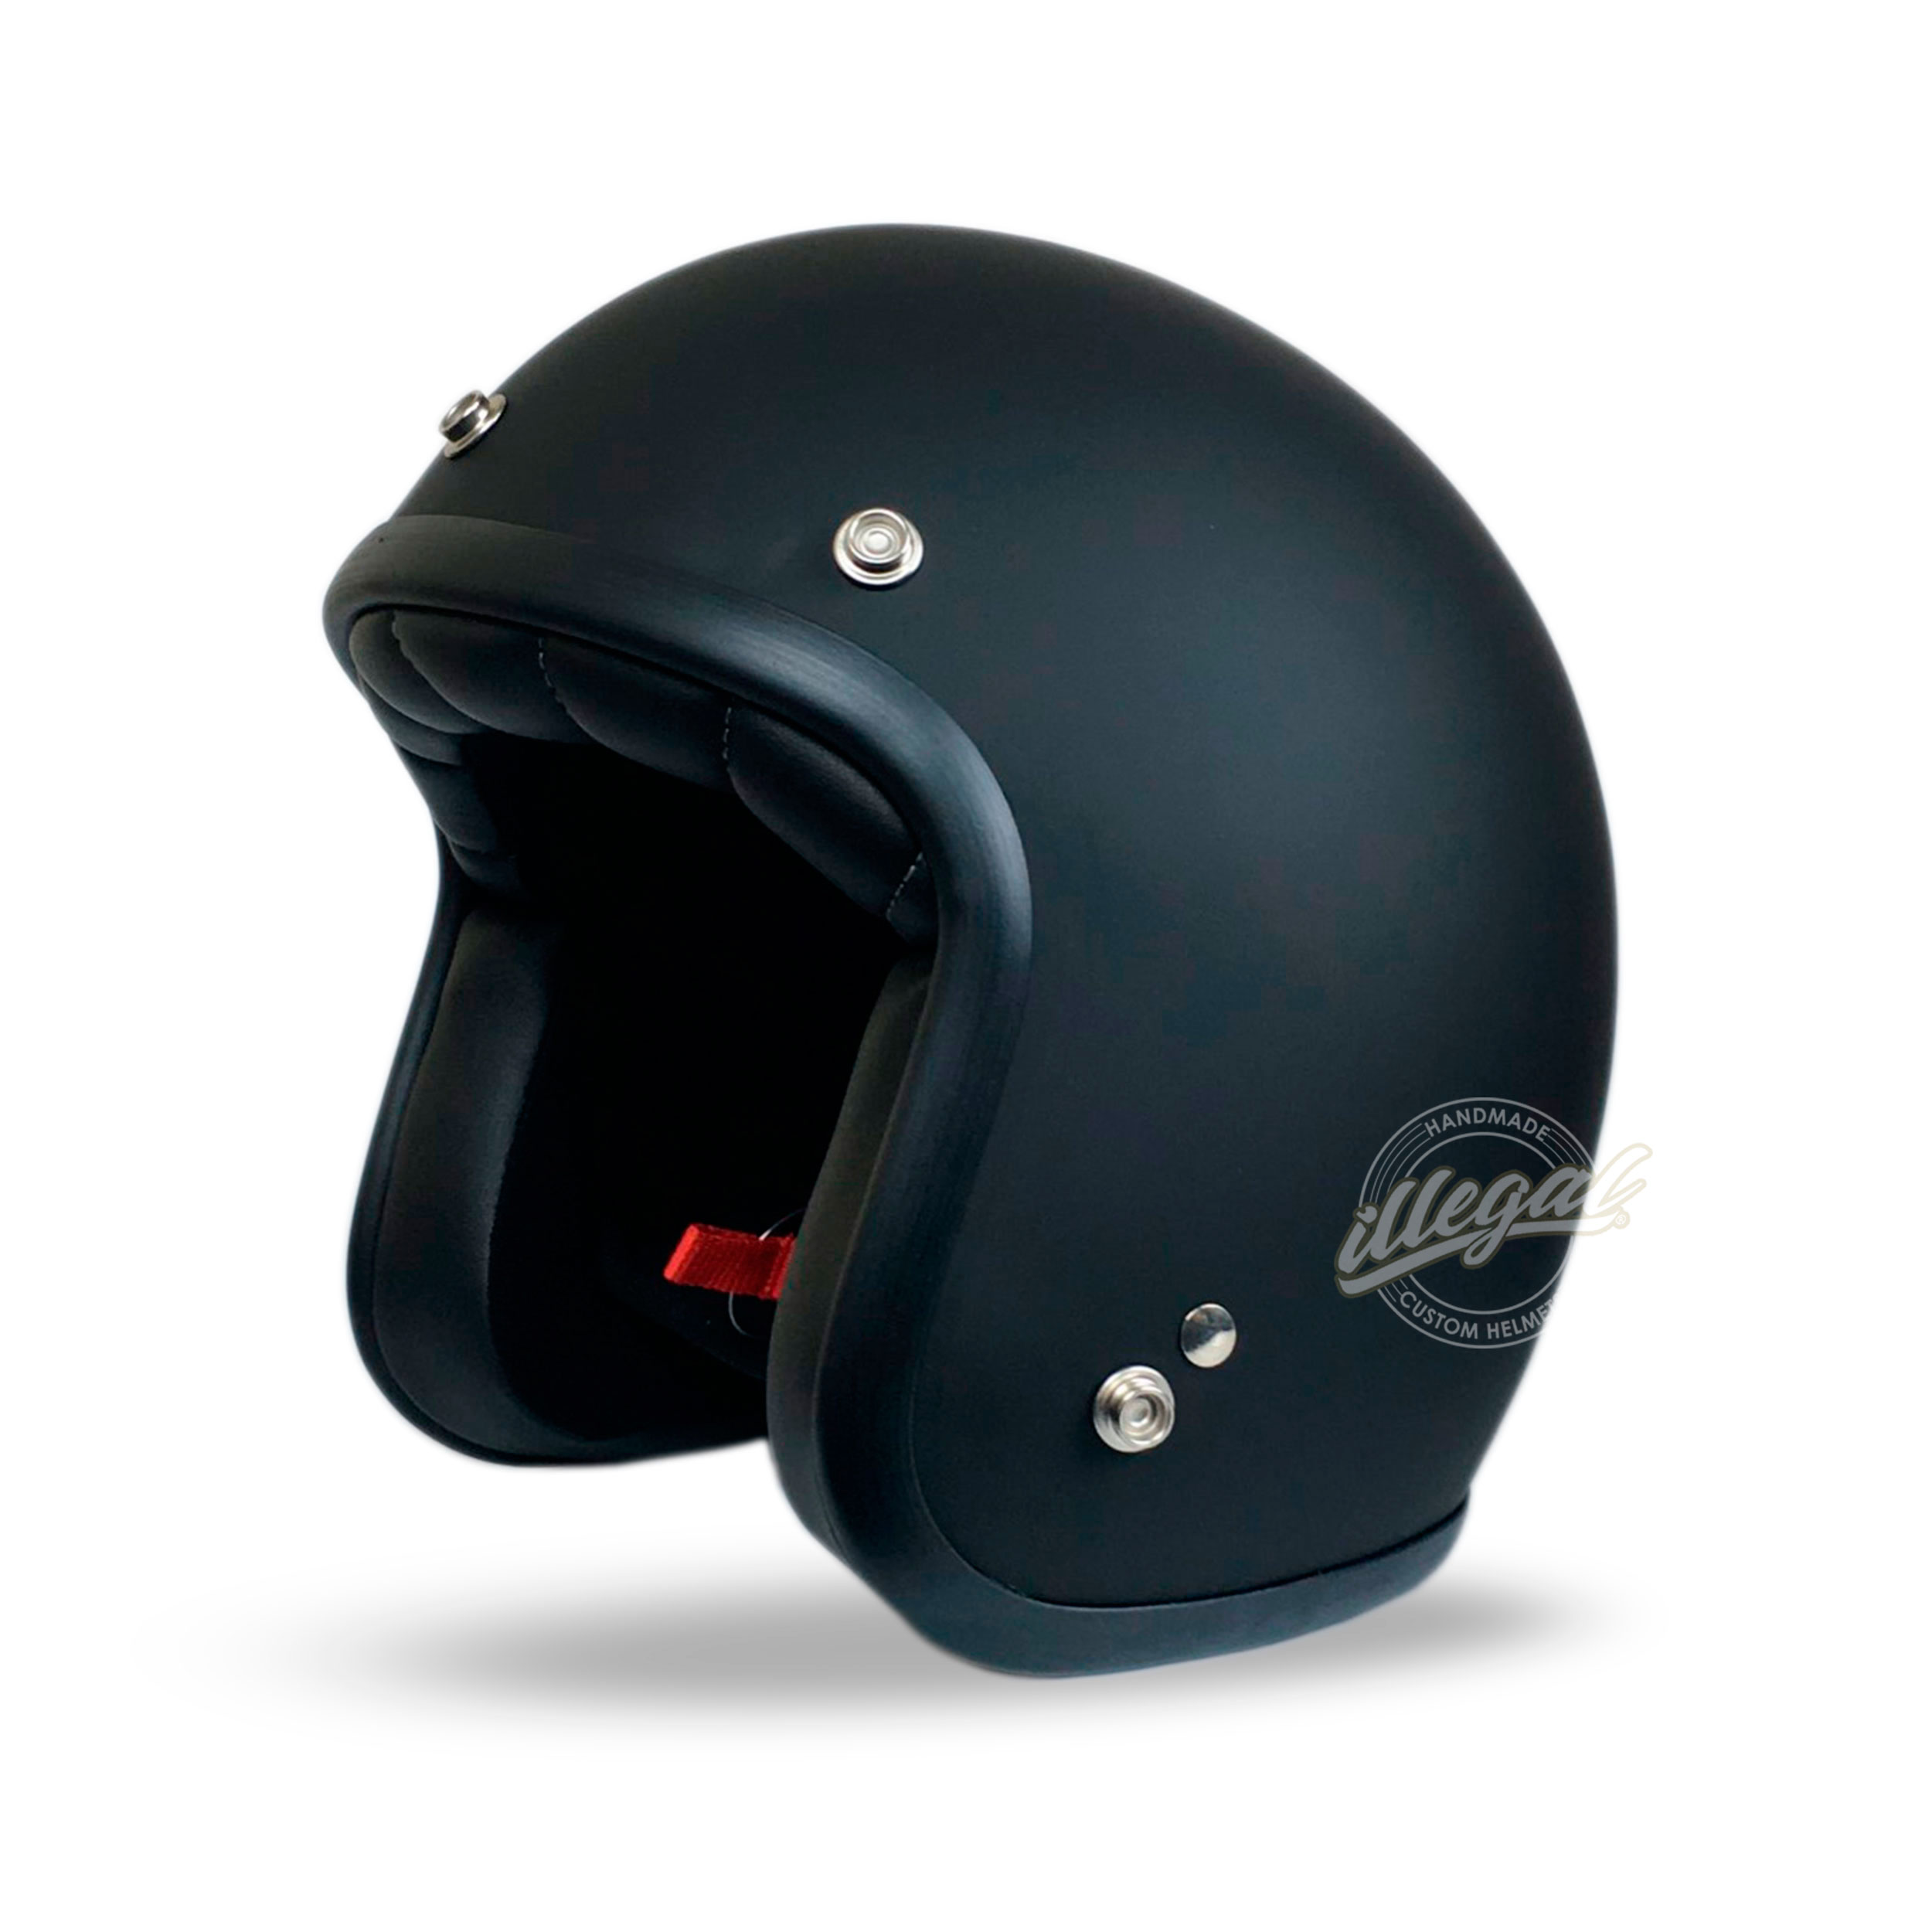 casco moto scooter nero opaco